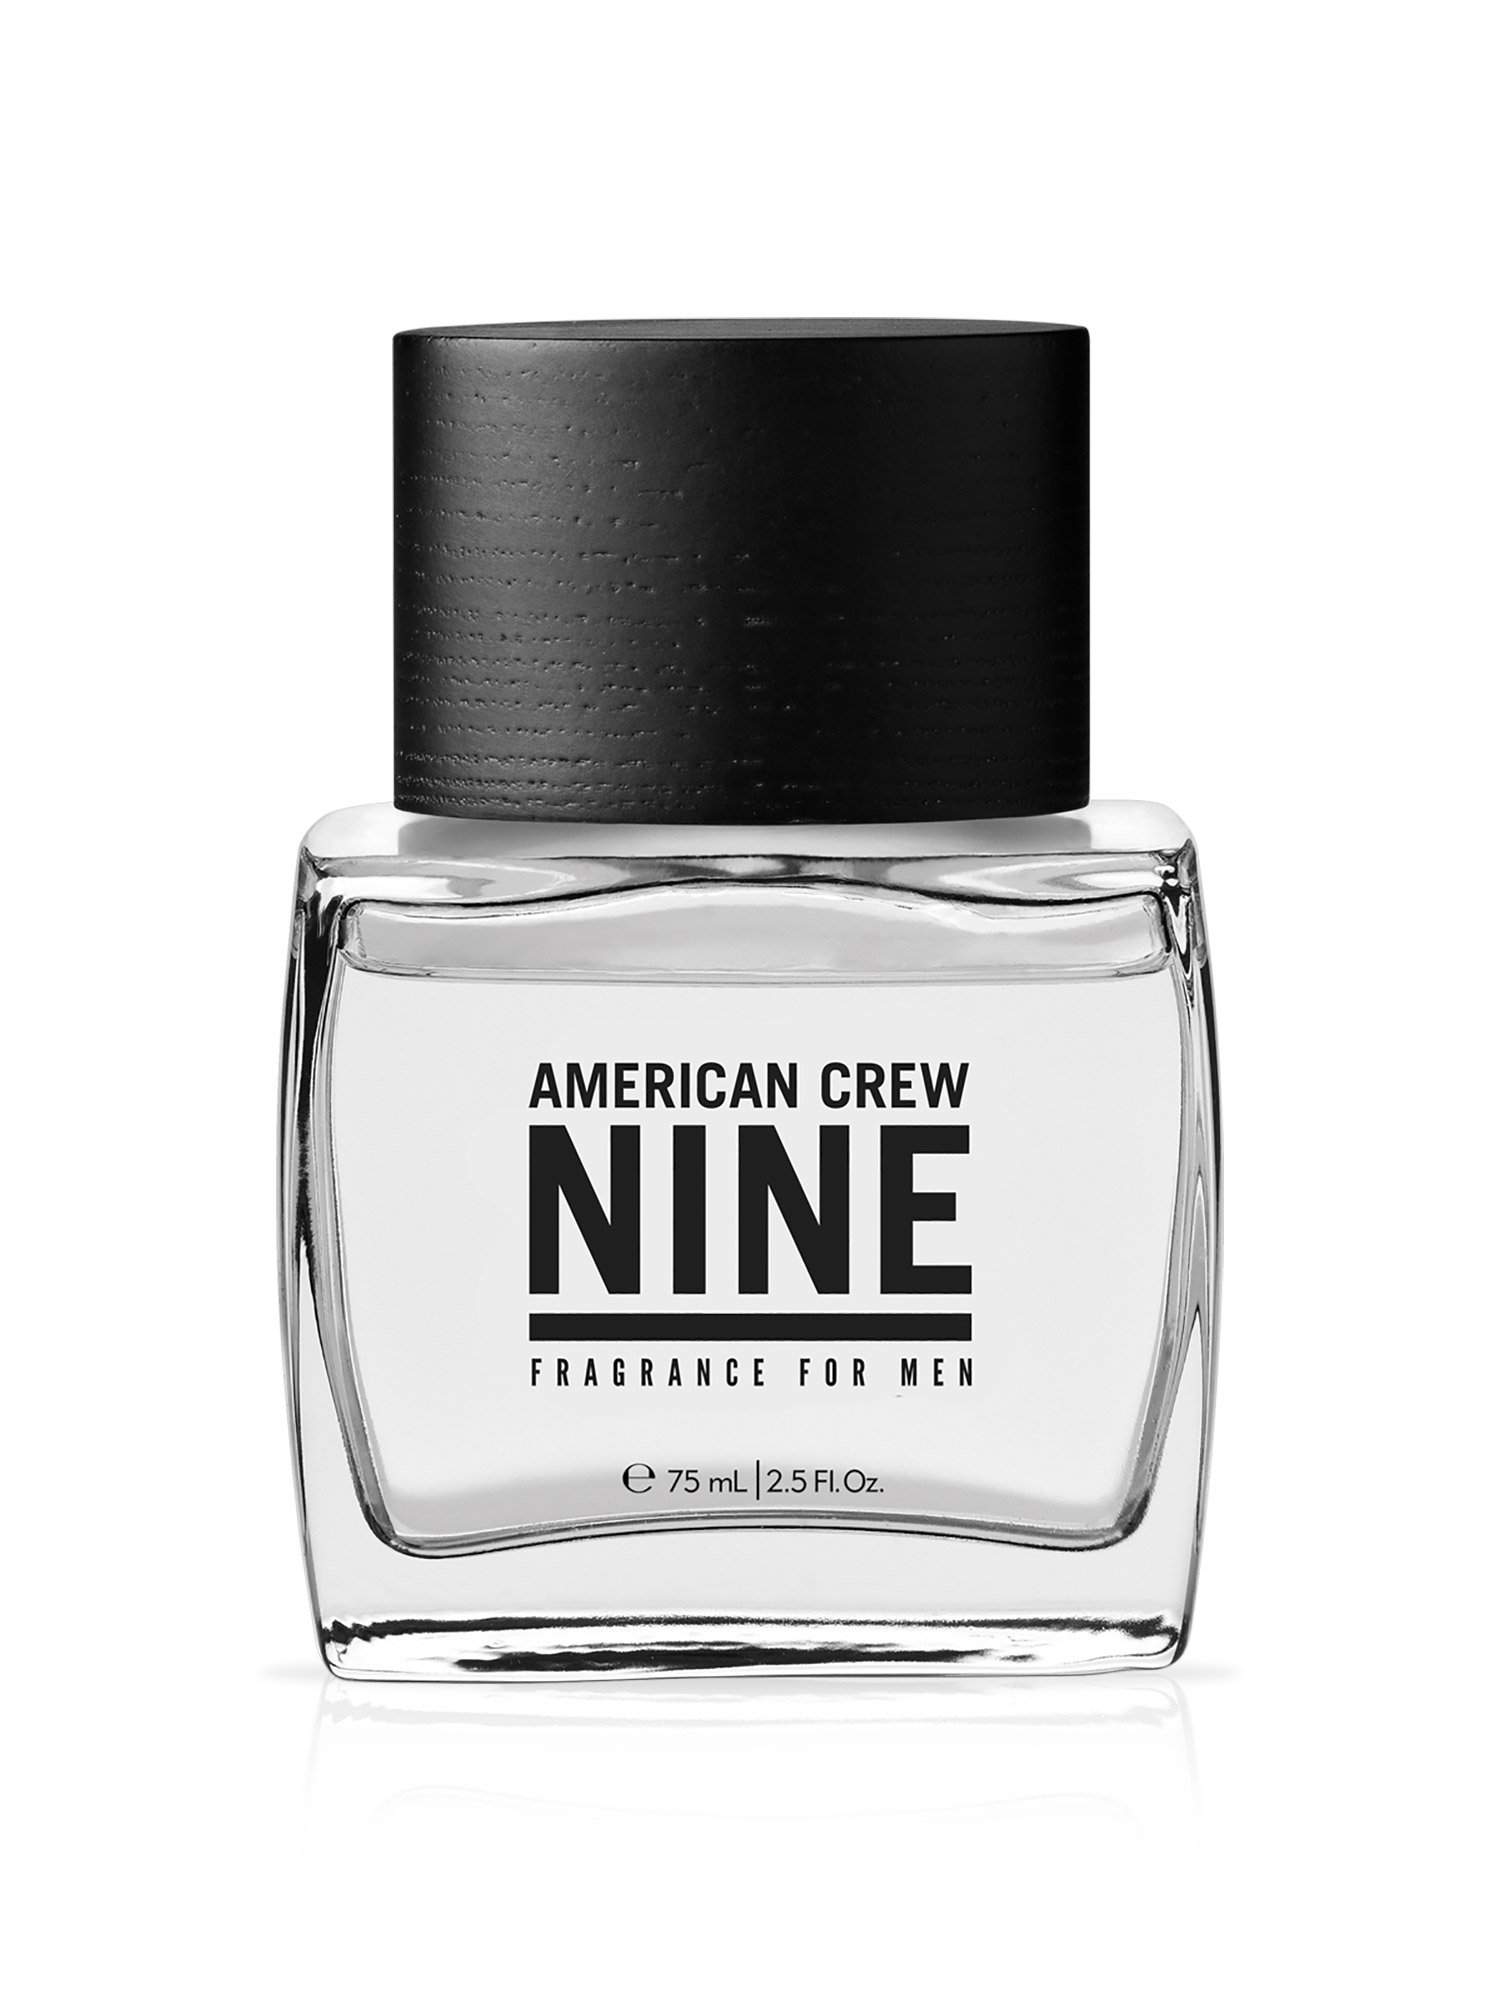 American Crew  Nine Fragrance for men – pánsky parfém deviatich vôni, 75ml